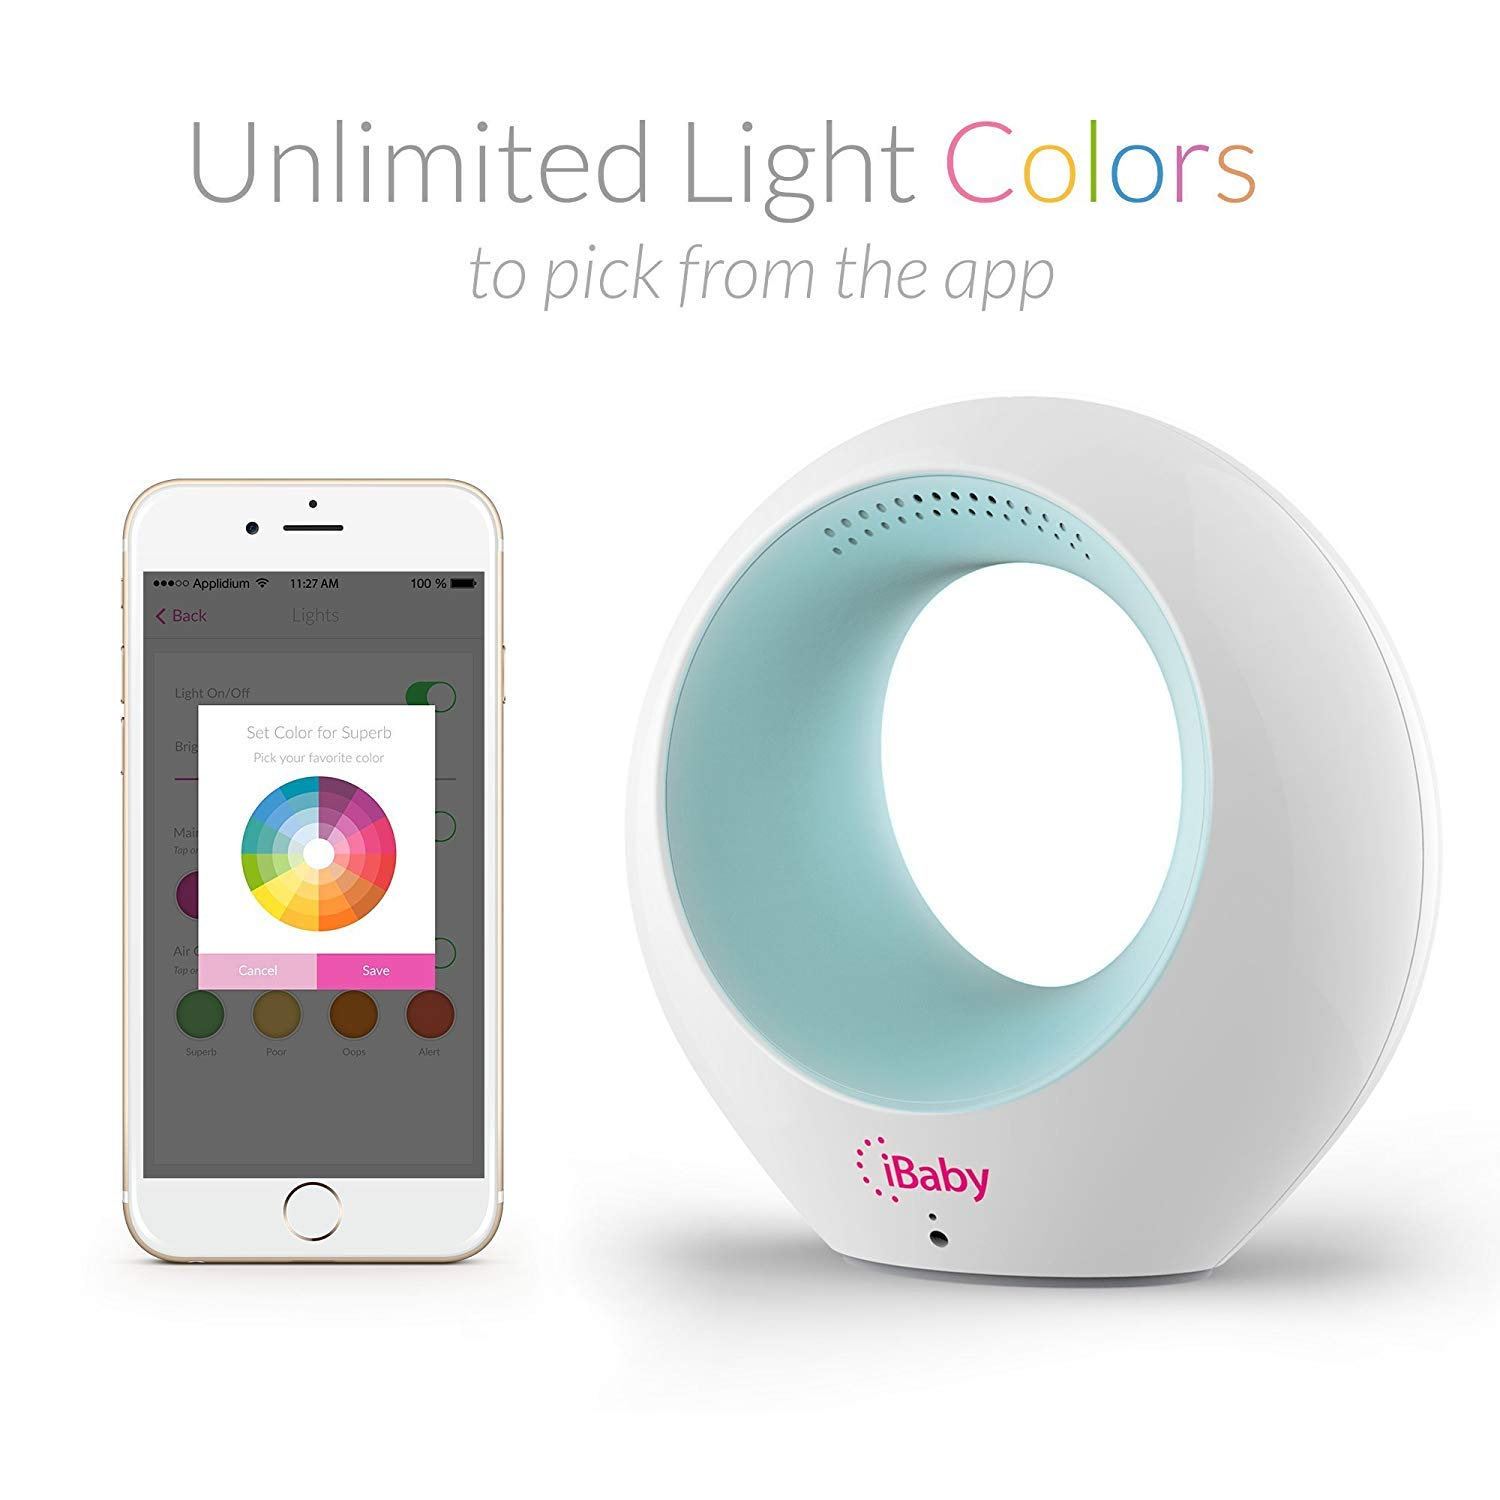 Air Smart Baby Audio Monitor White Alarm Clock FM Radio Early Education Machine Temperature /& VOC Detector Wake-up Light Therapy Lamp iBaby Wake Up Light